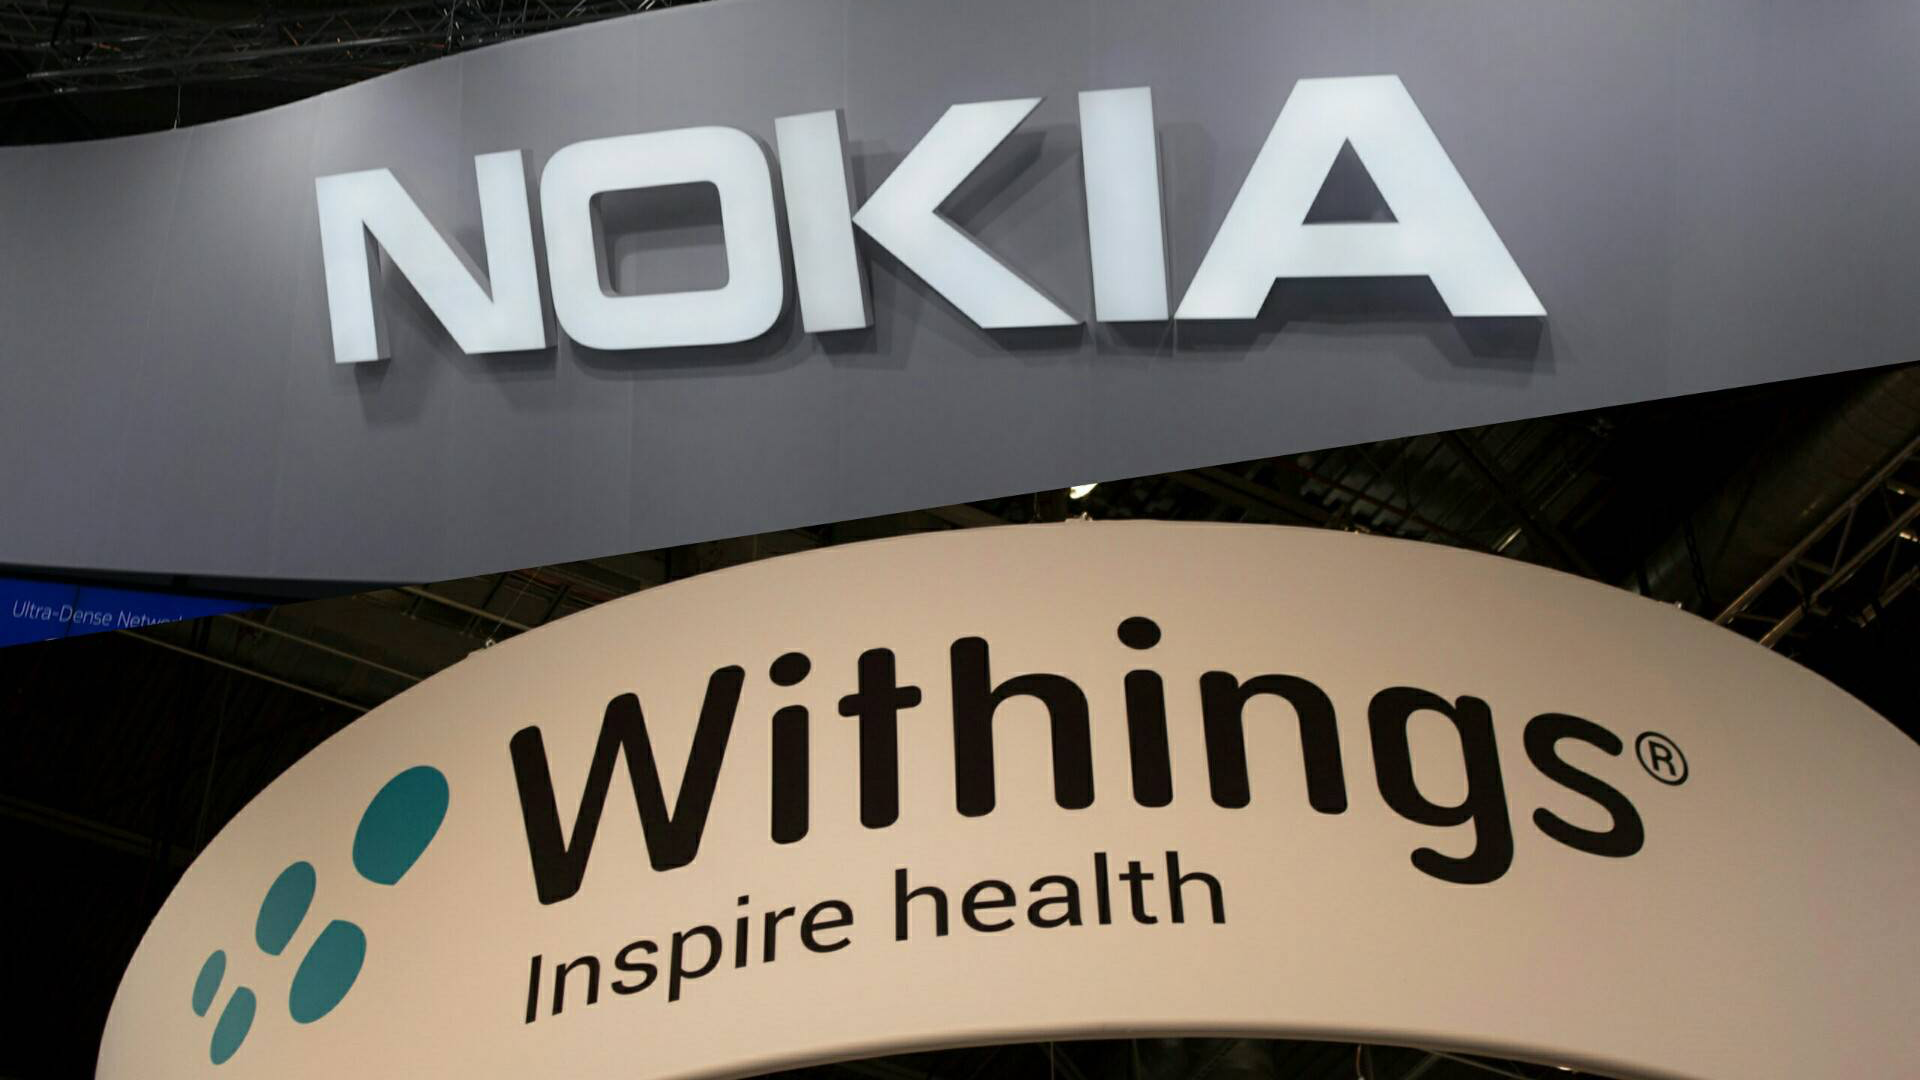 nokia withings logos 16x9